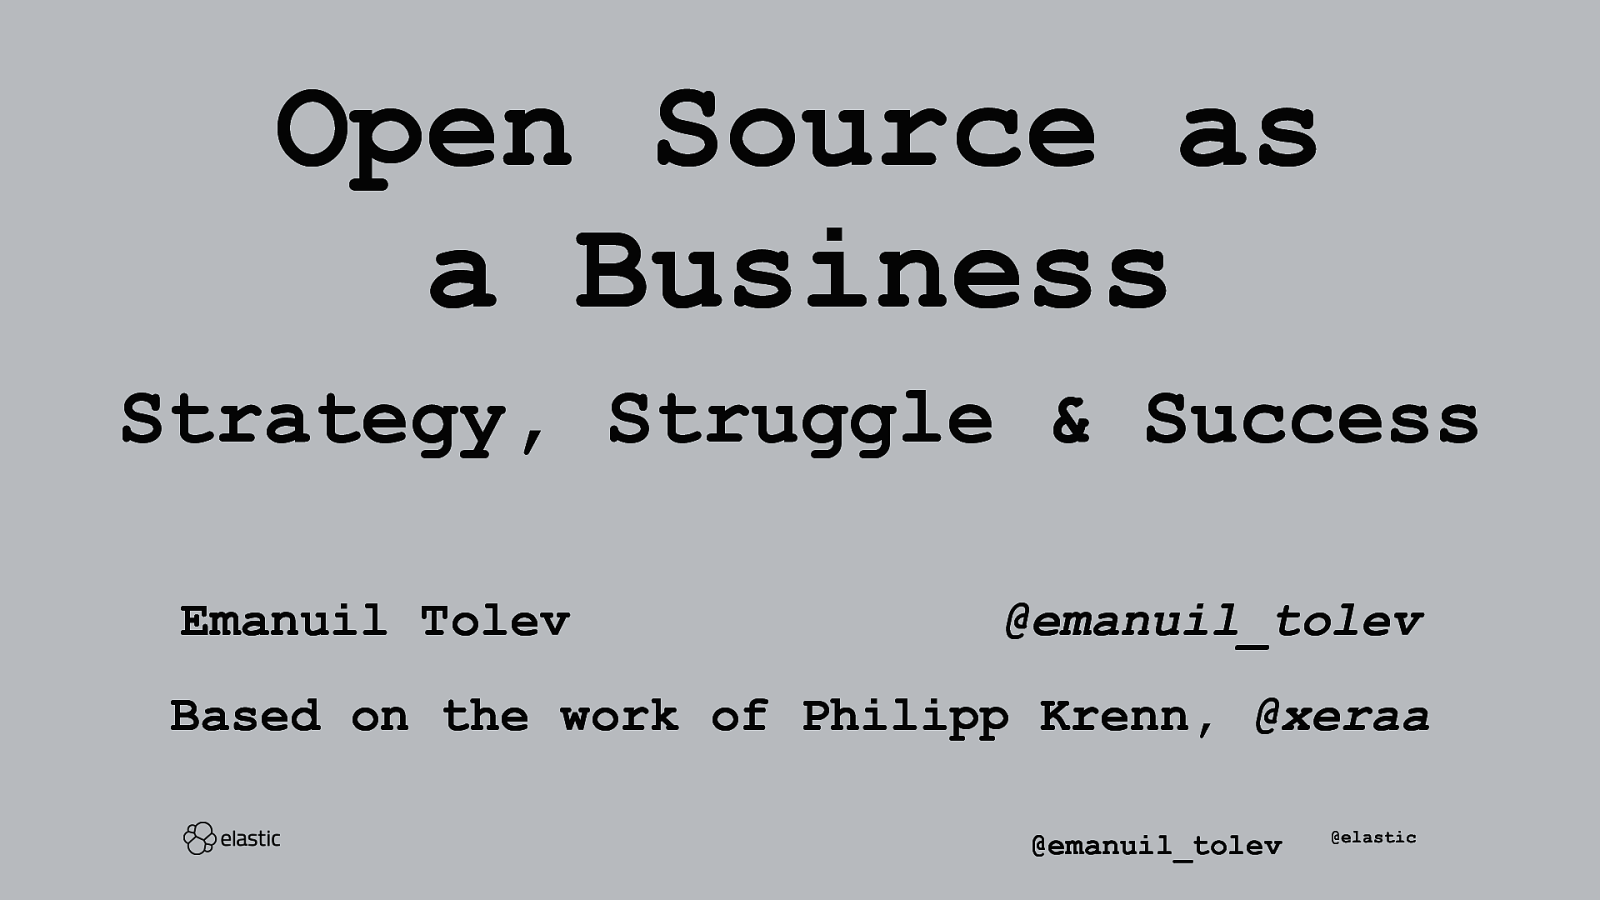 Open Source as a Business: Strategy, Struggle & Success